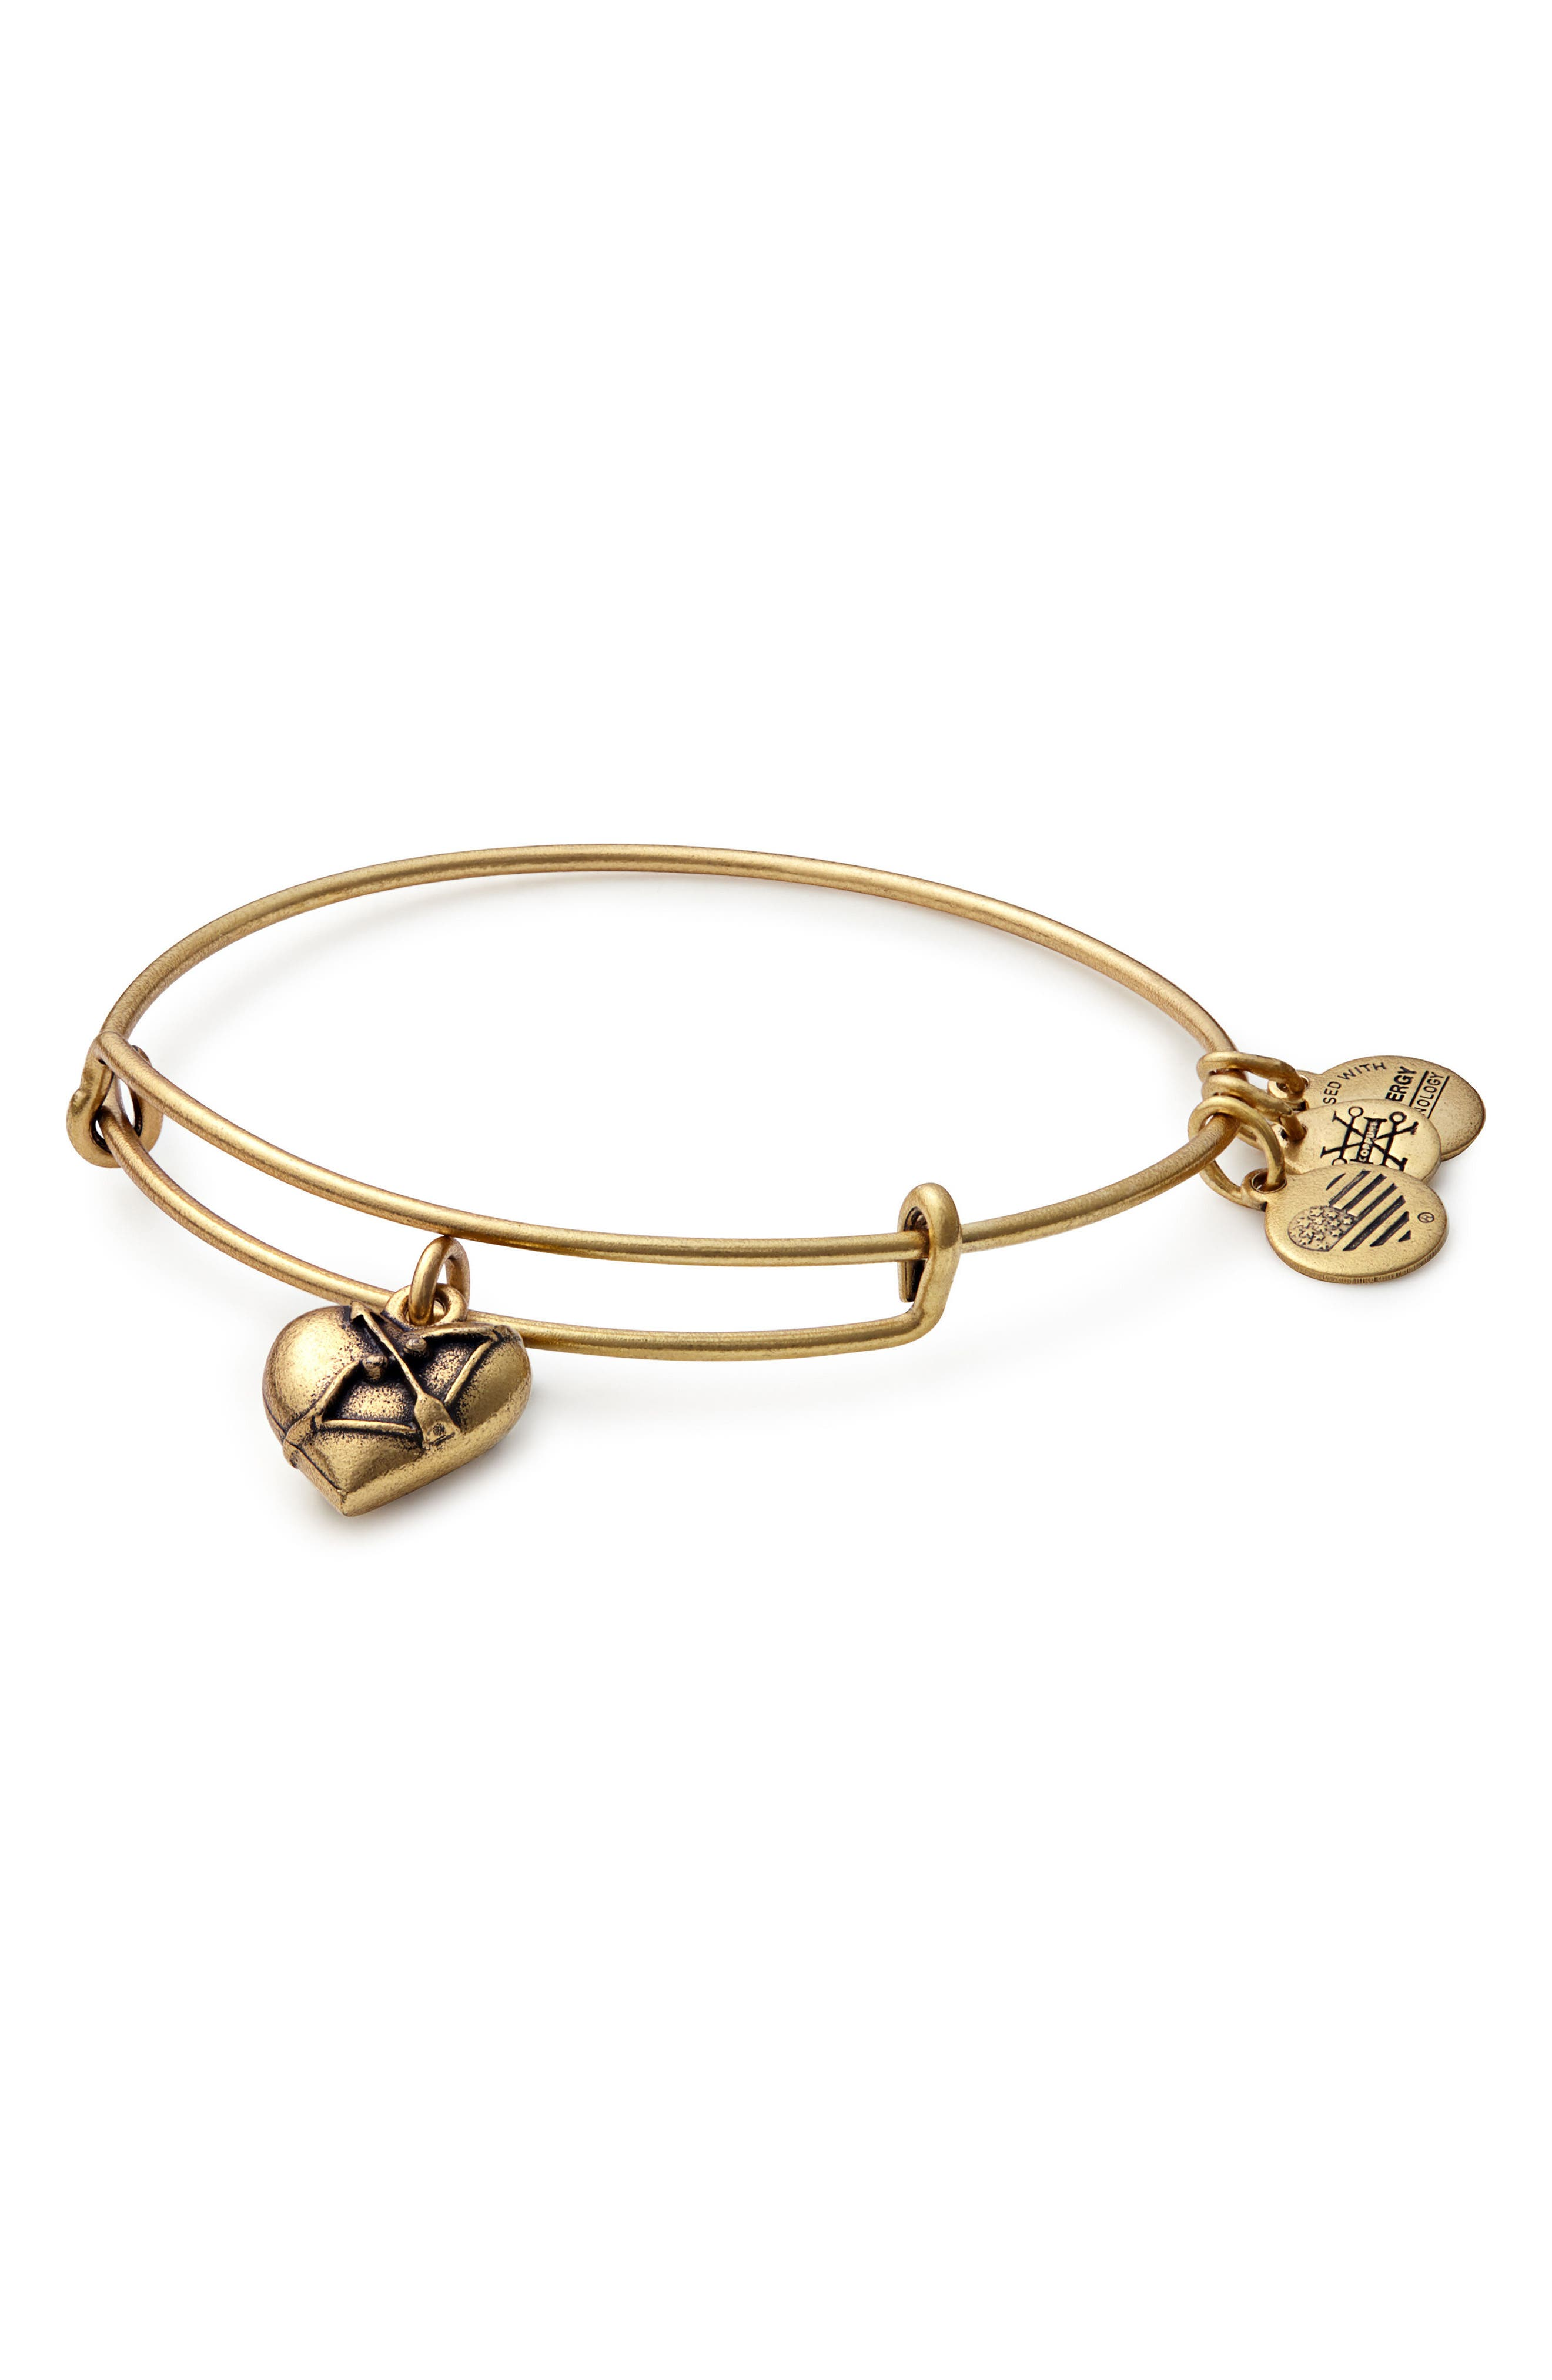 Alex and Ani Cupid's Heart Expandable Charm Bracelet